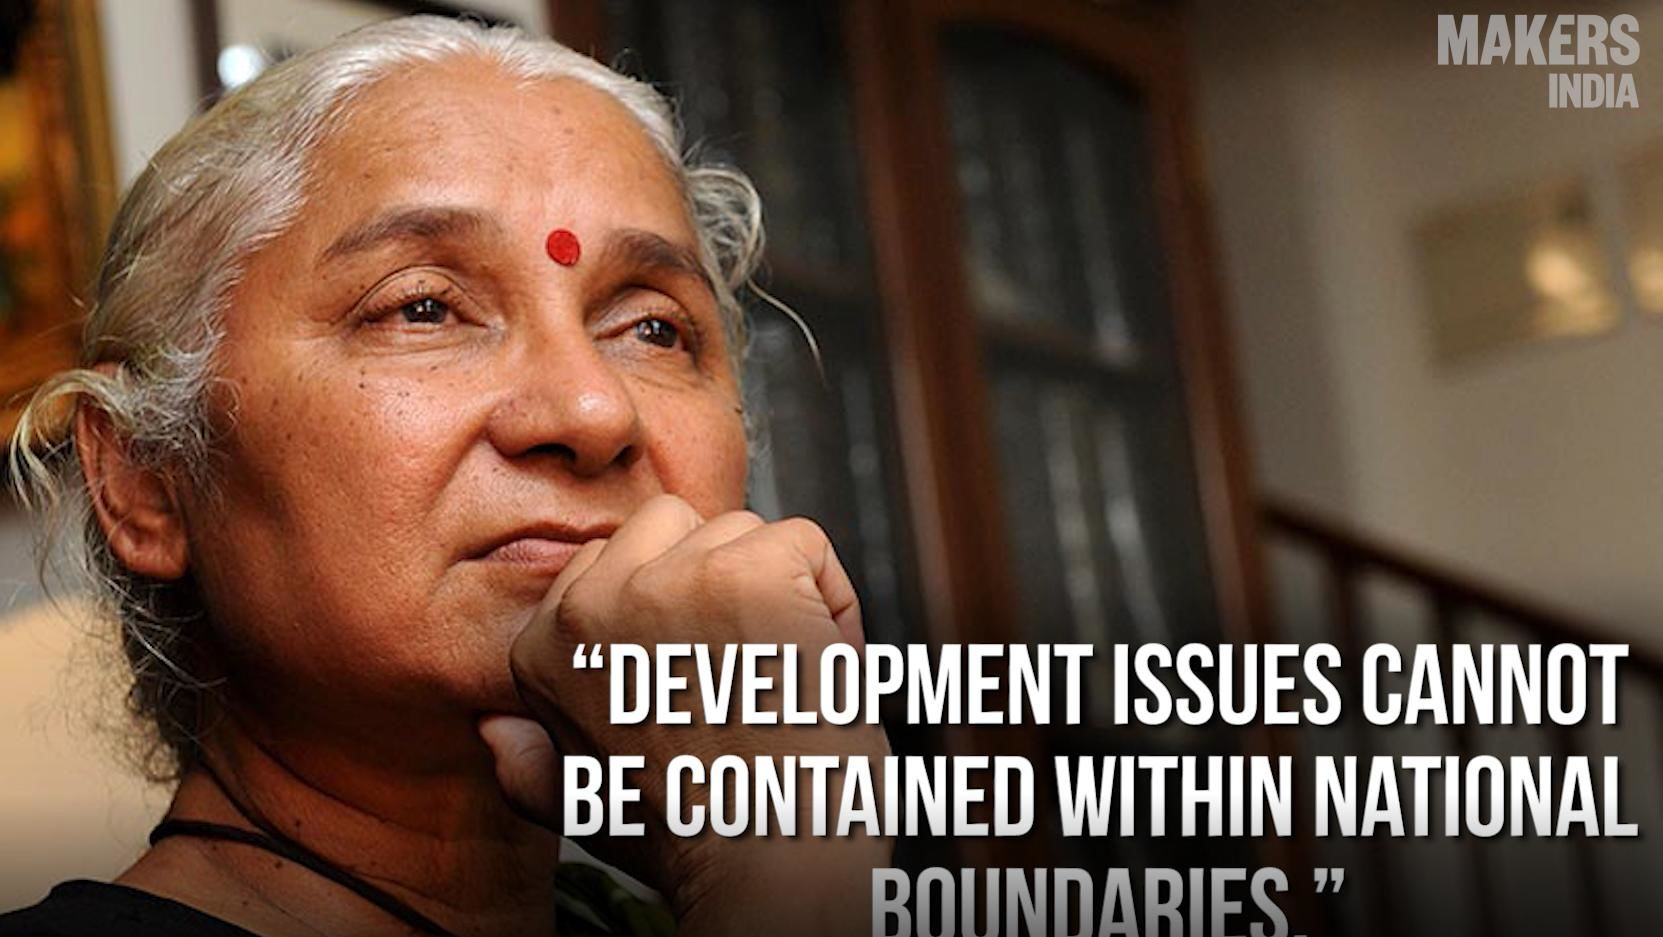 Medha Patkar: Development Issues Cannot Be Contained Within National Boundaries